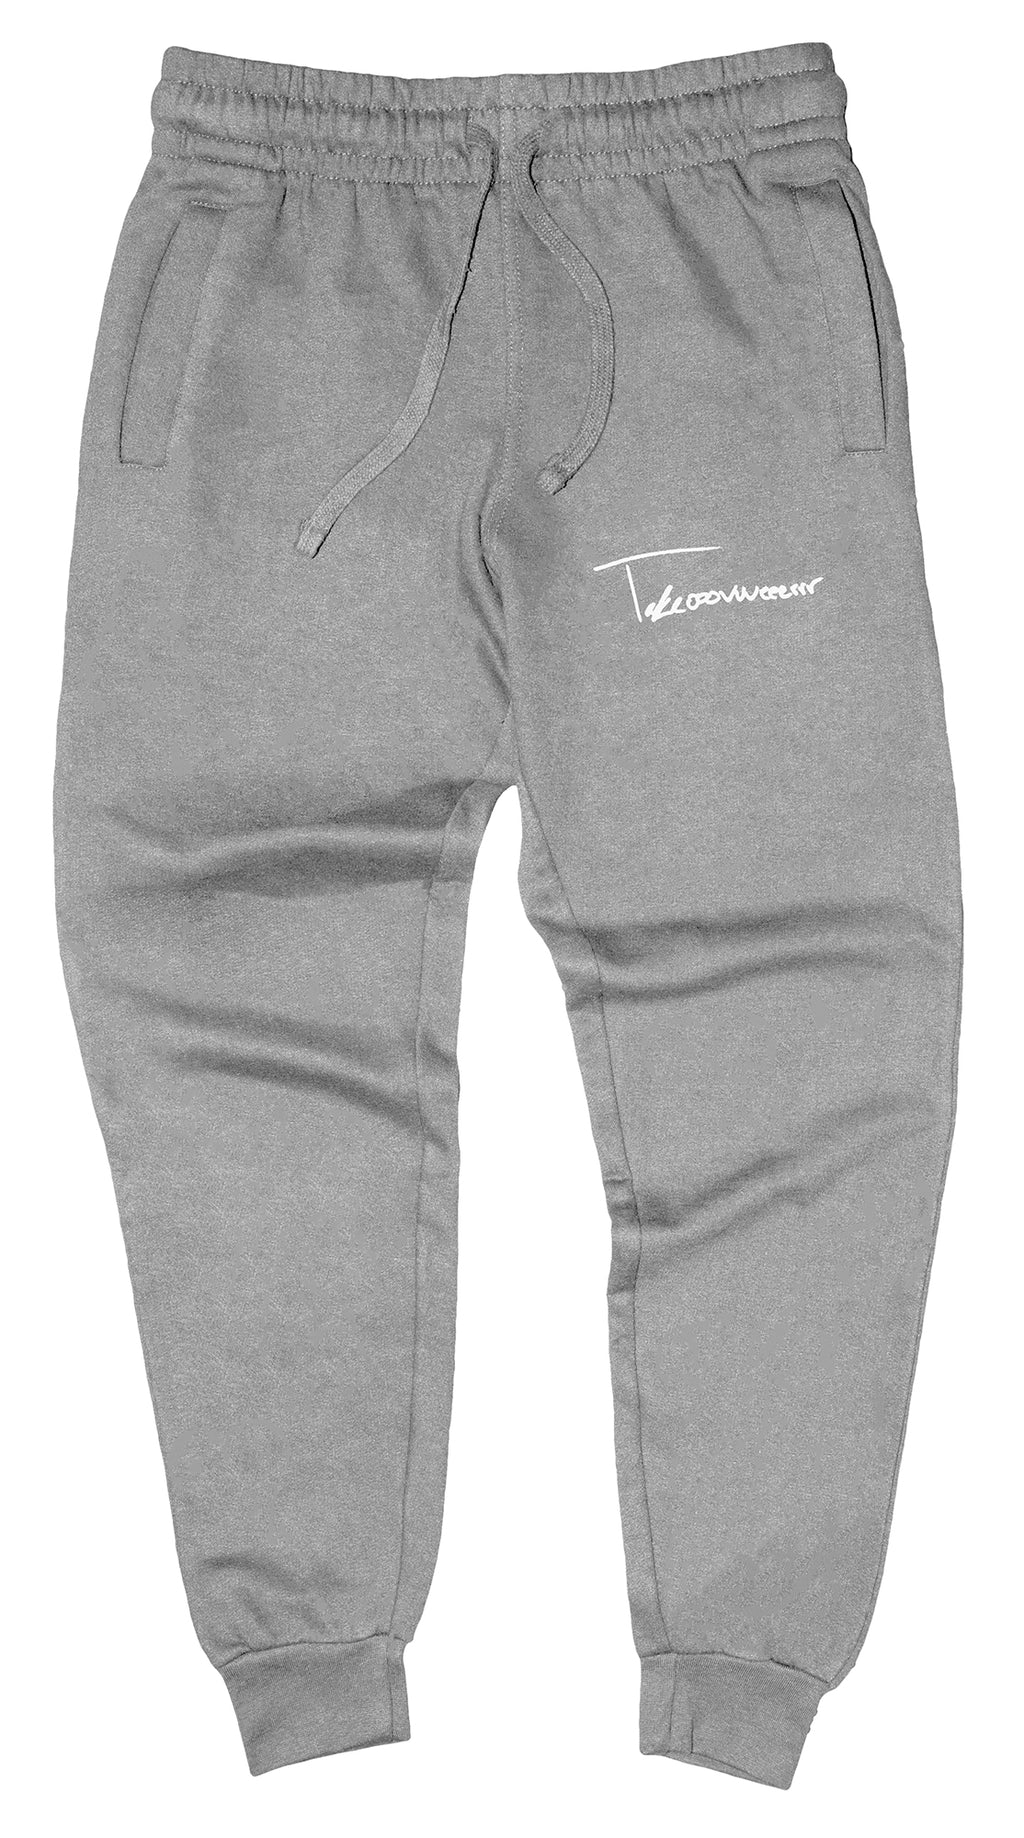 Takeover Signature Sweatpants (Gray/White)